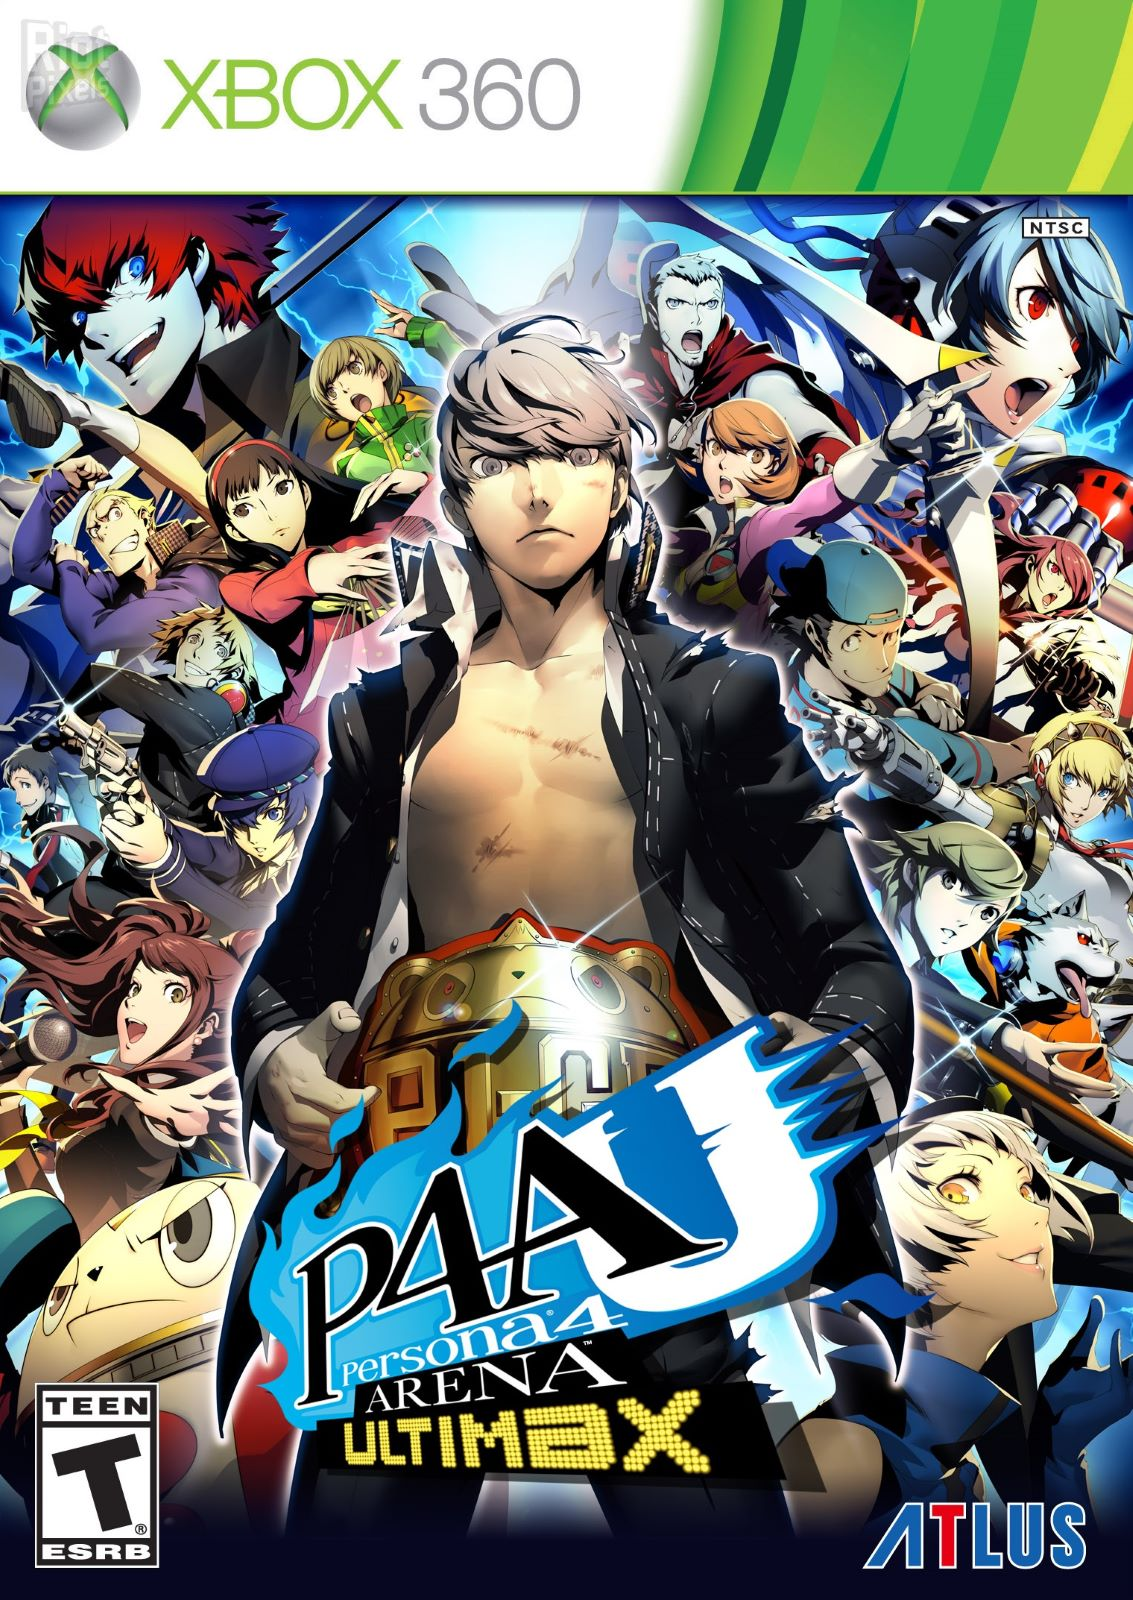 Persona 4 Arena Ultimax full game free pc, download, play  Persona 4